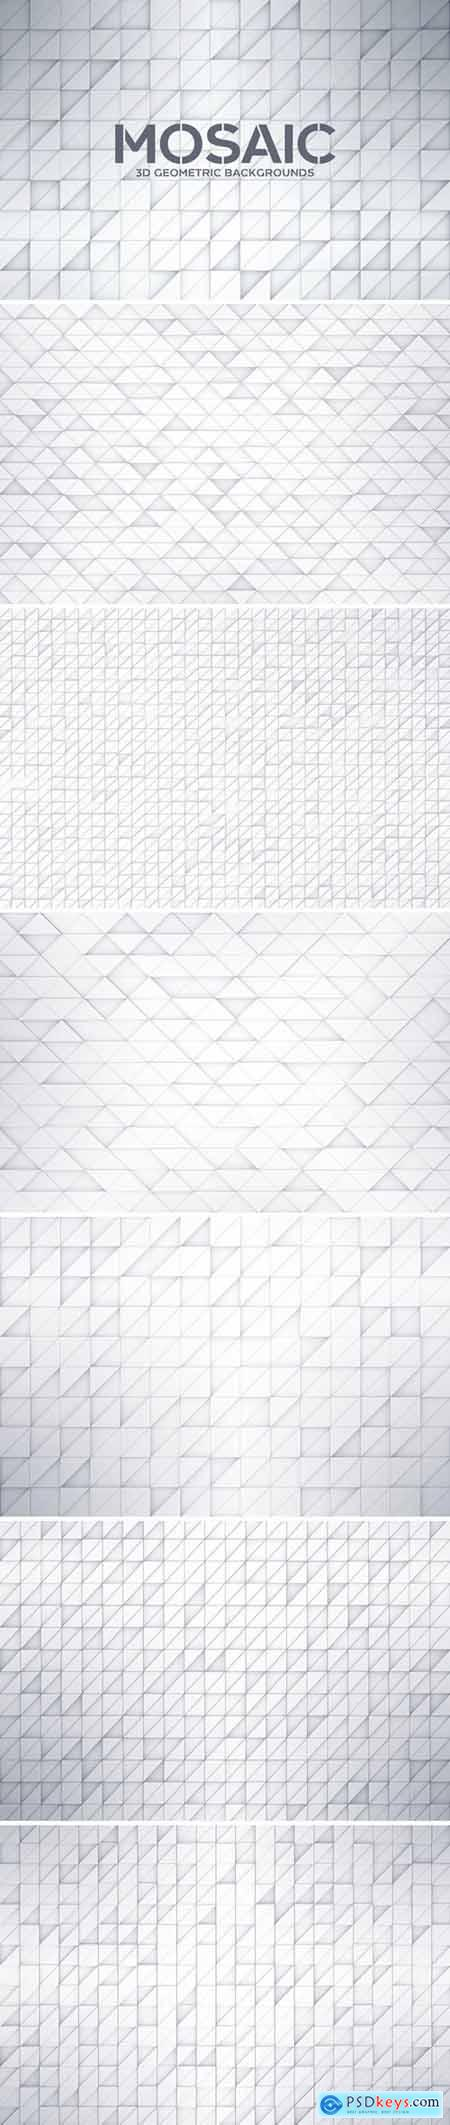 3D Geometric Mosaic Backgrounds